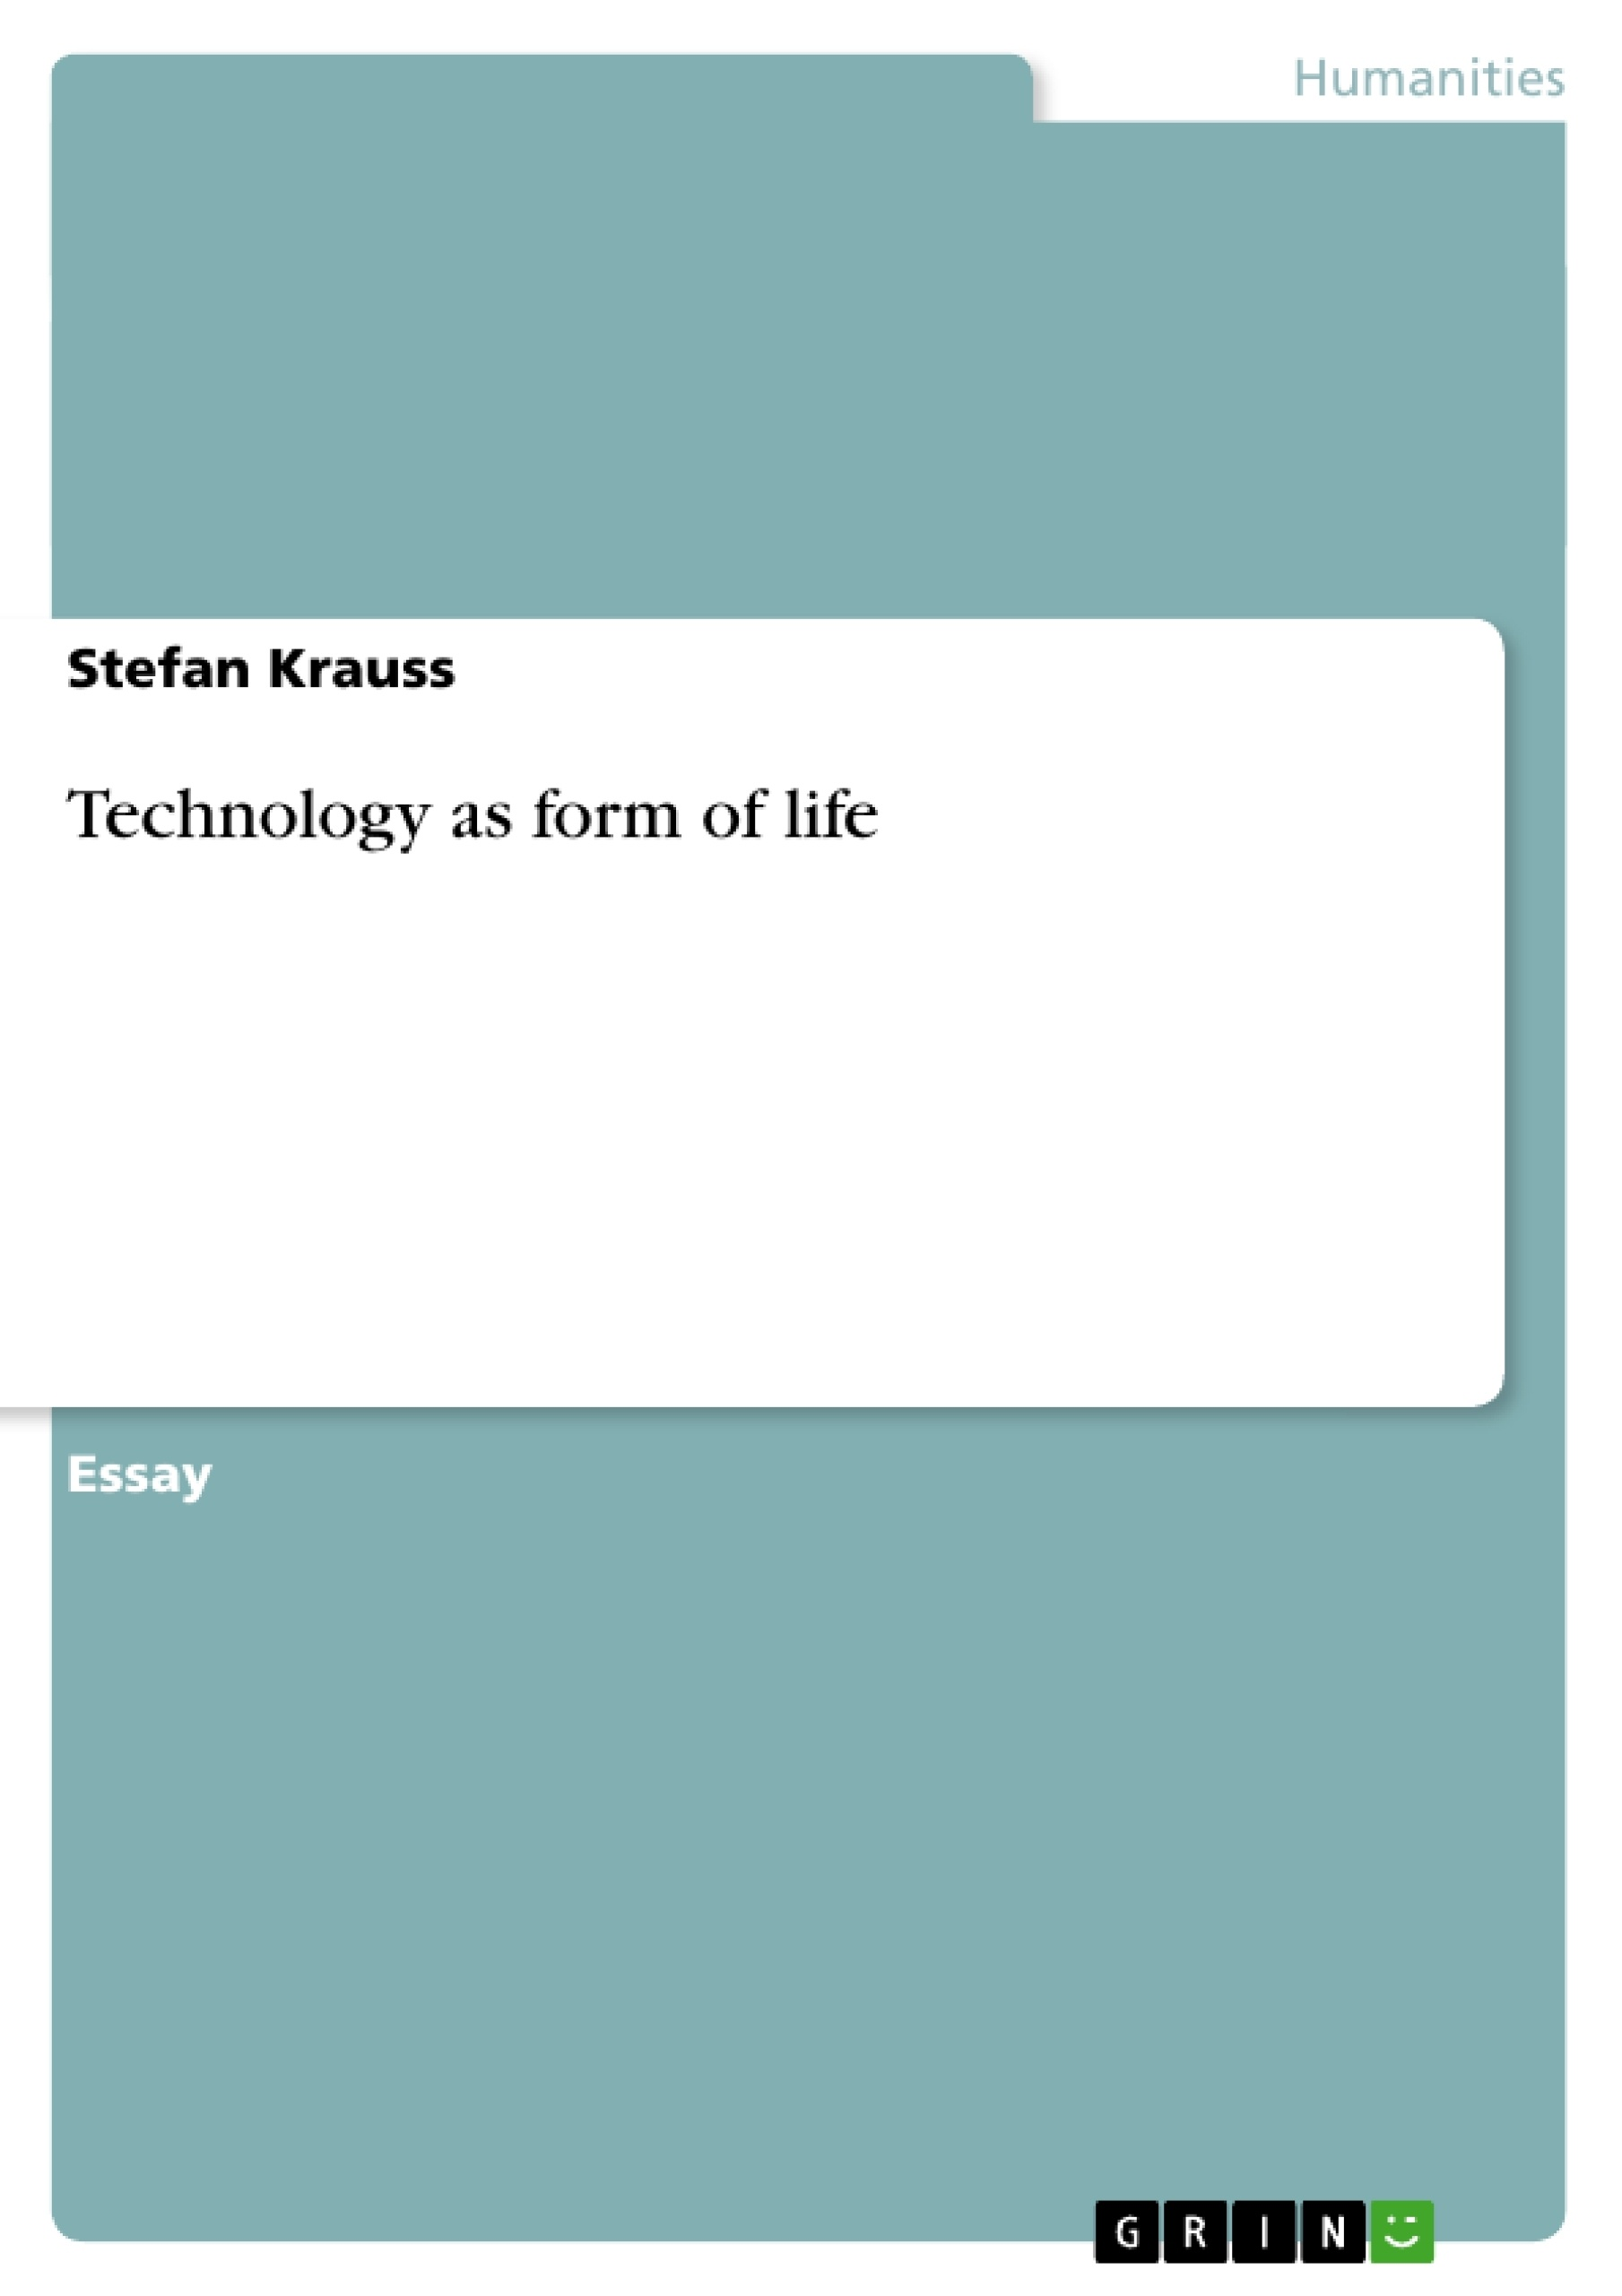 Title: Technology as form of life